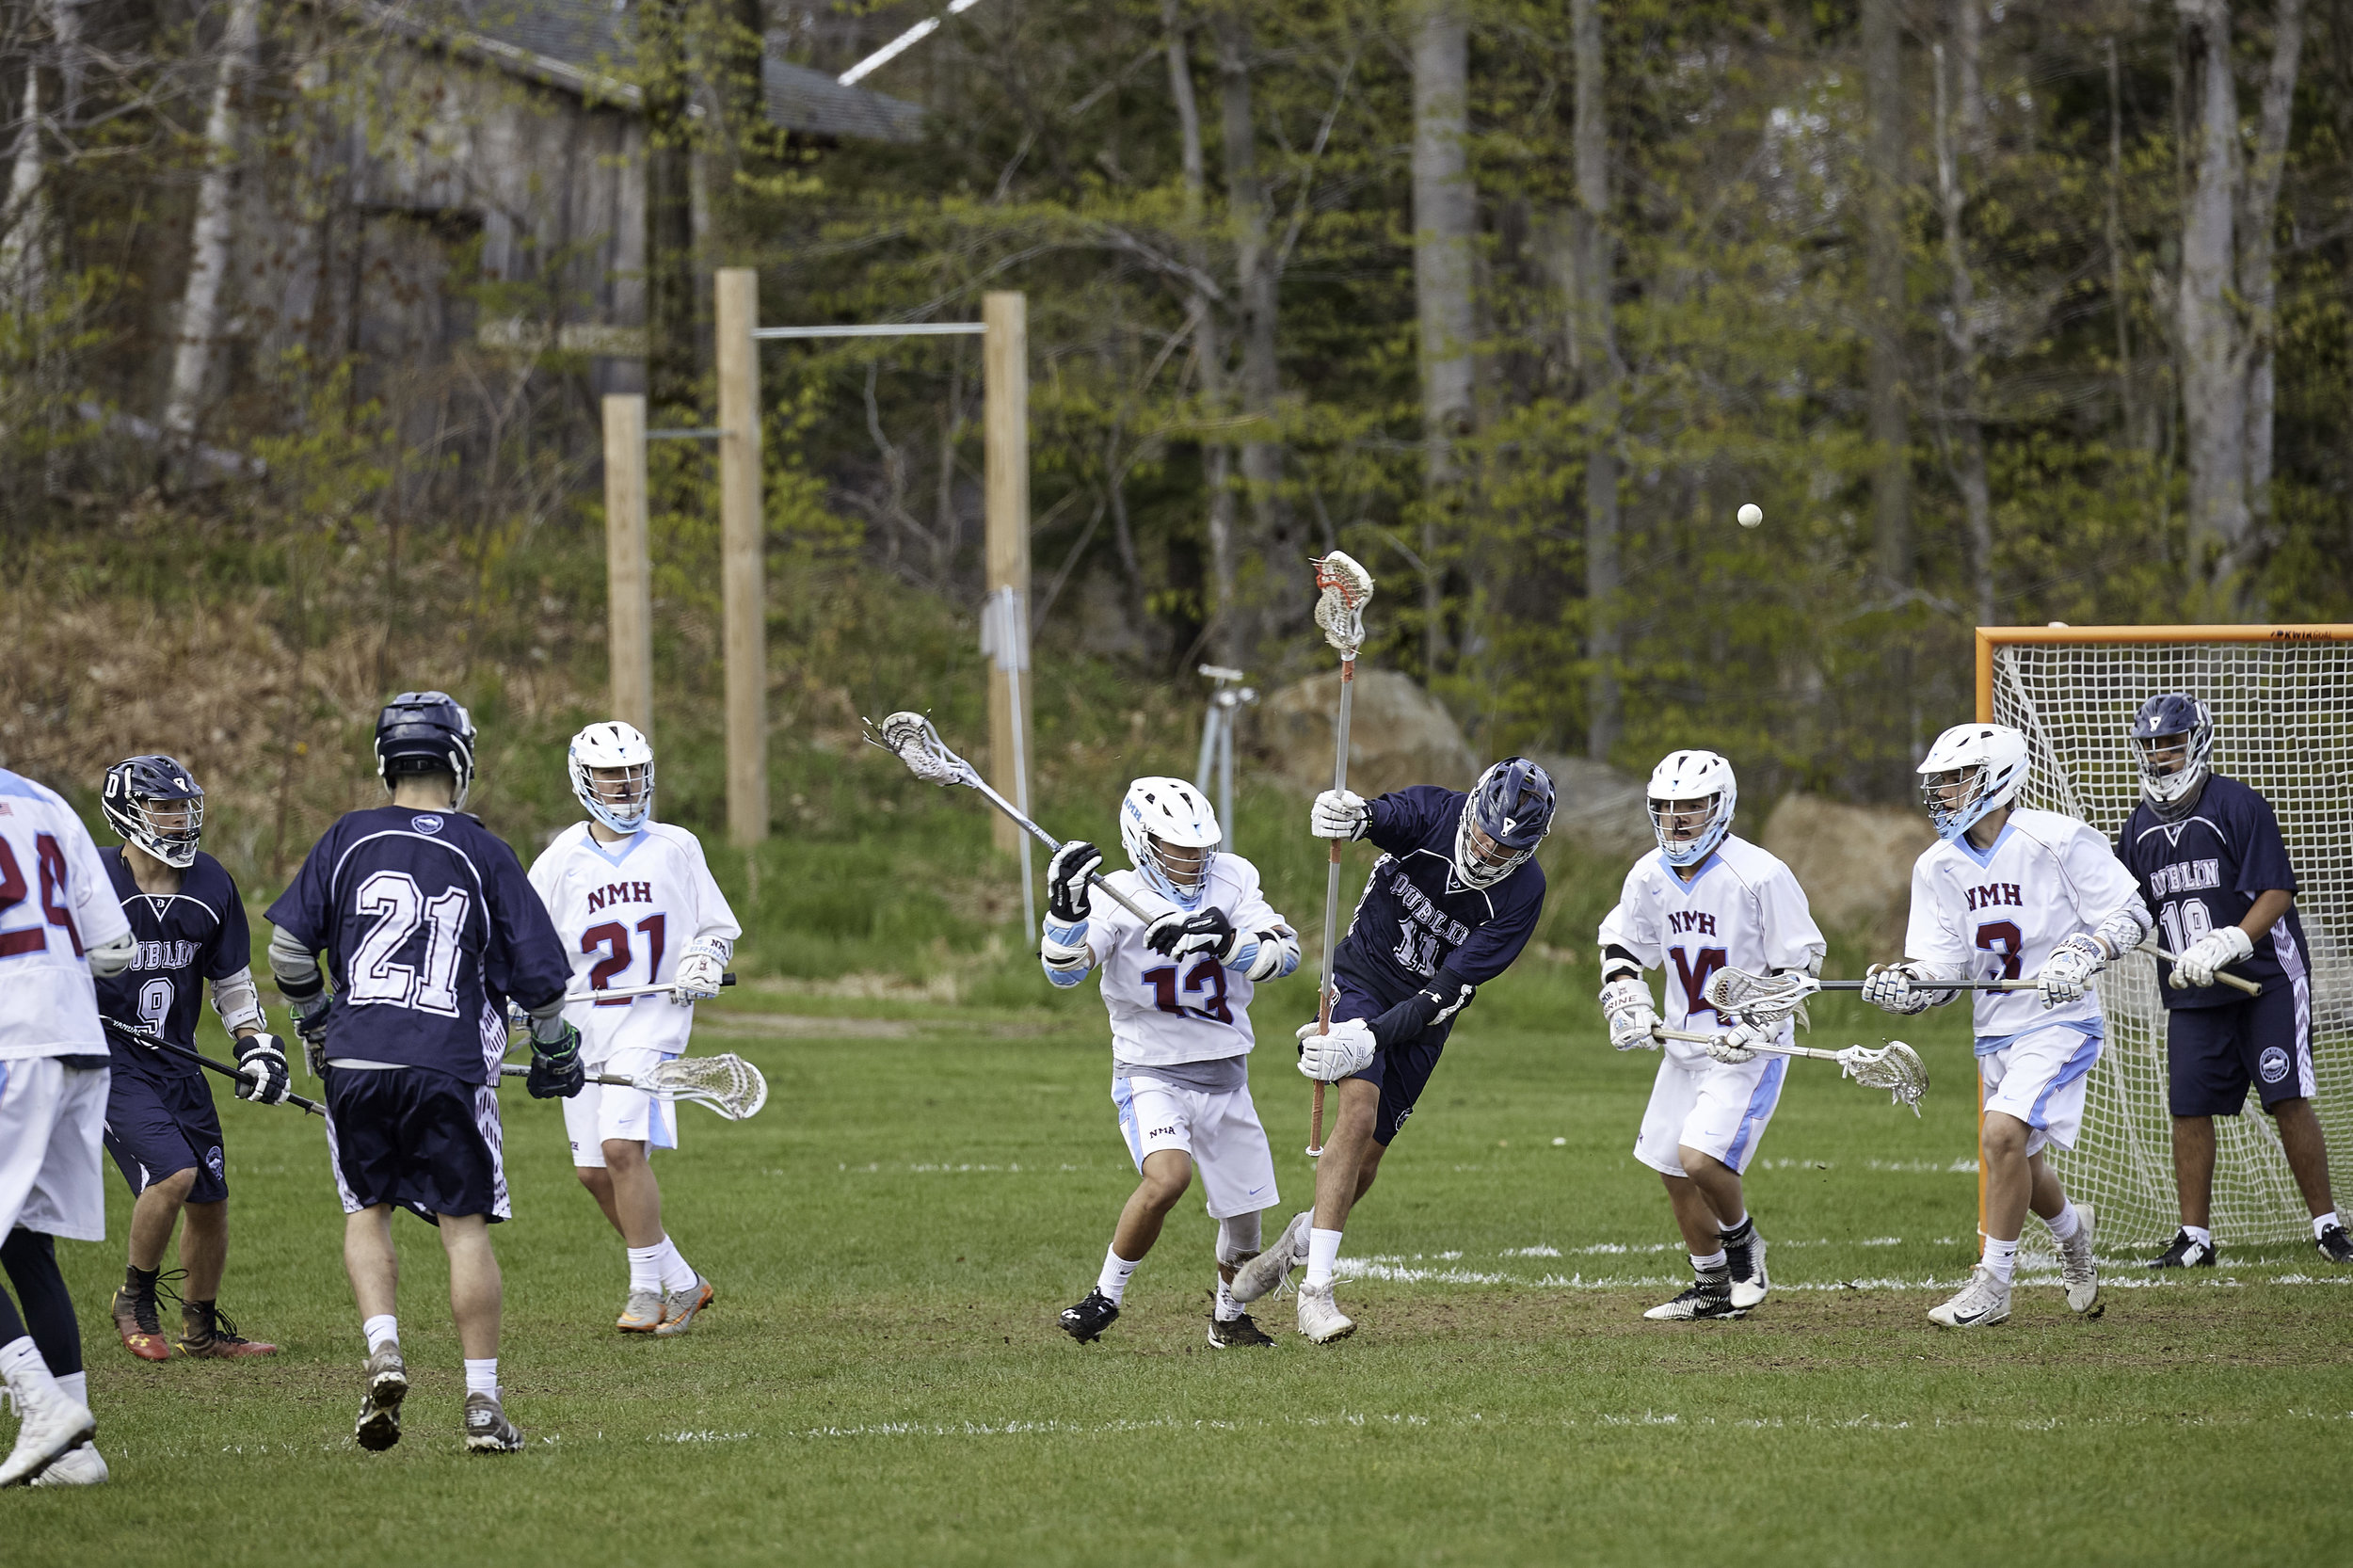 Boys Lax vs Northfield Mount Hermon JV - May 15 2019 - 0032.jpg